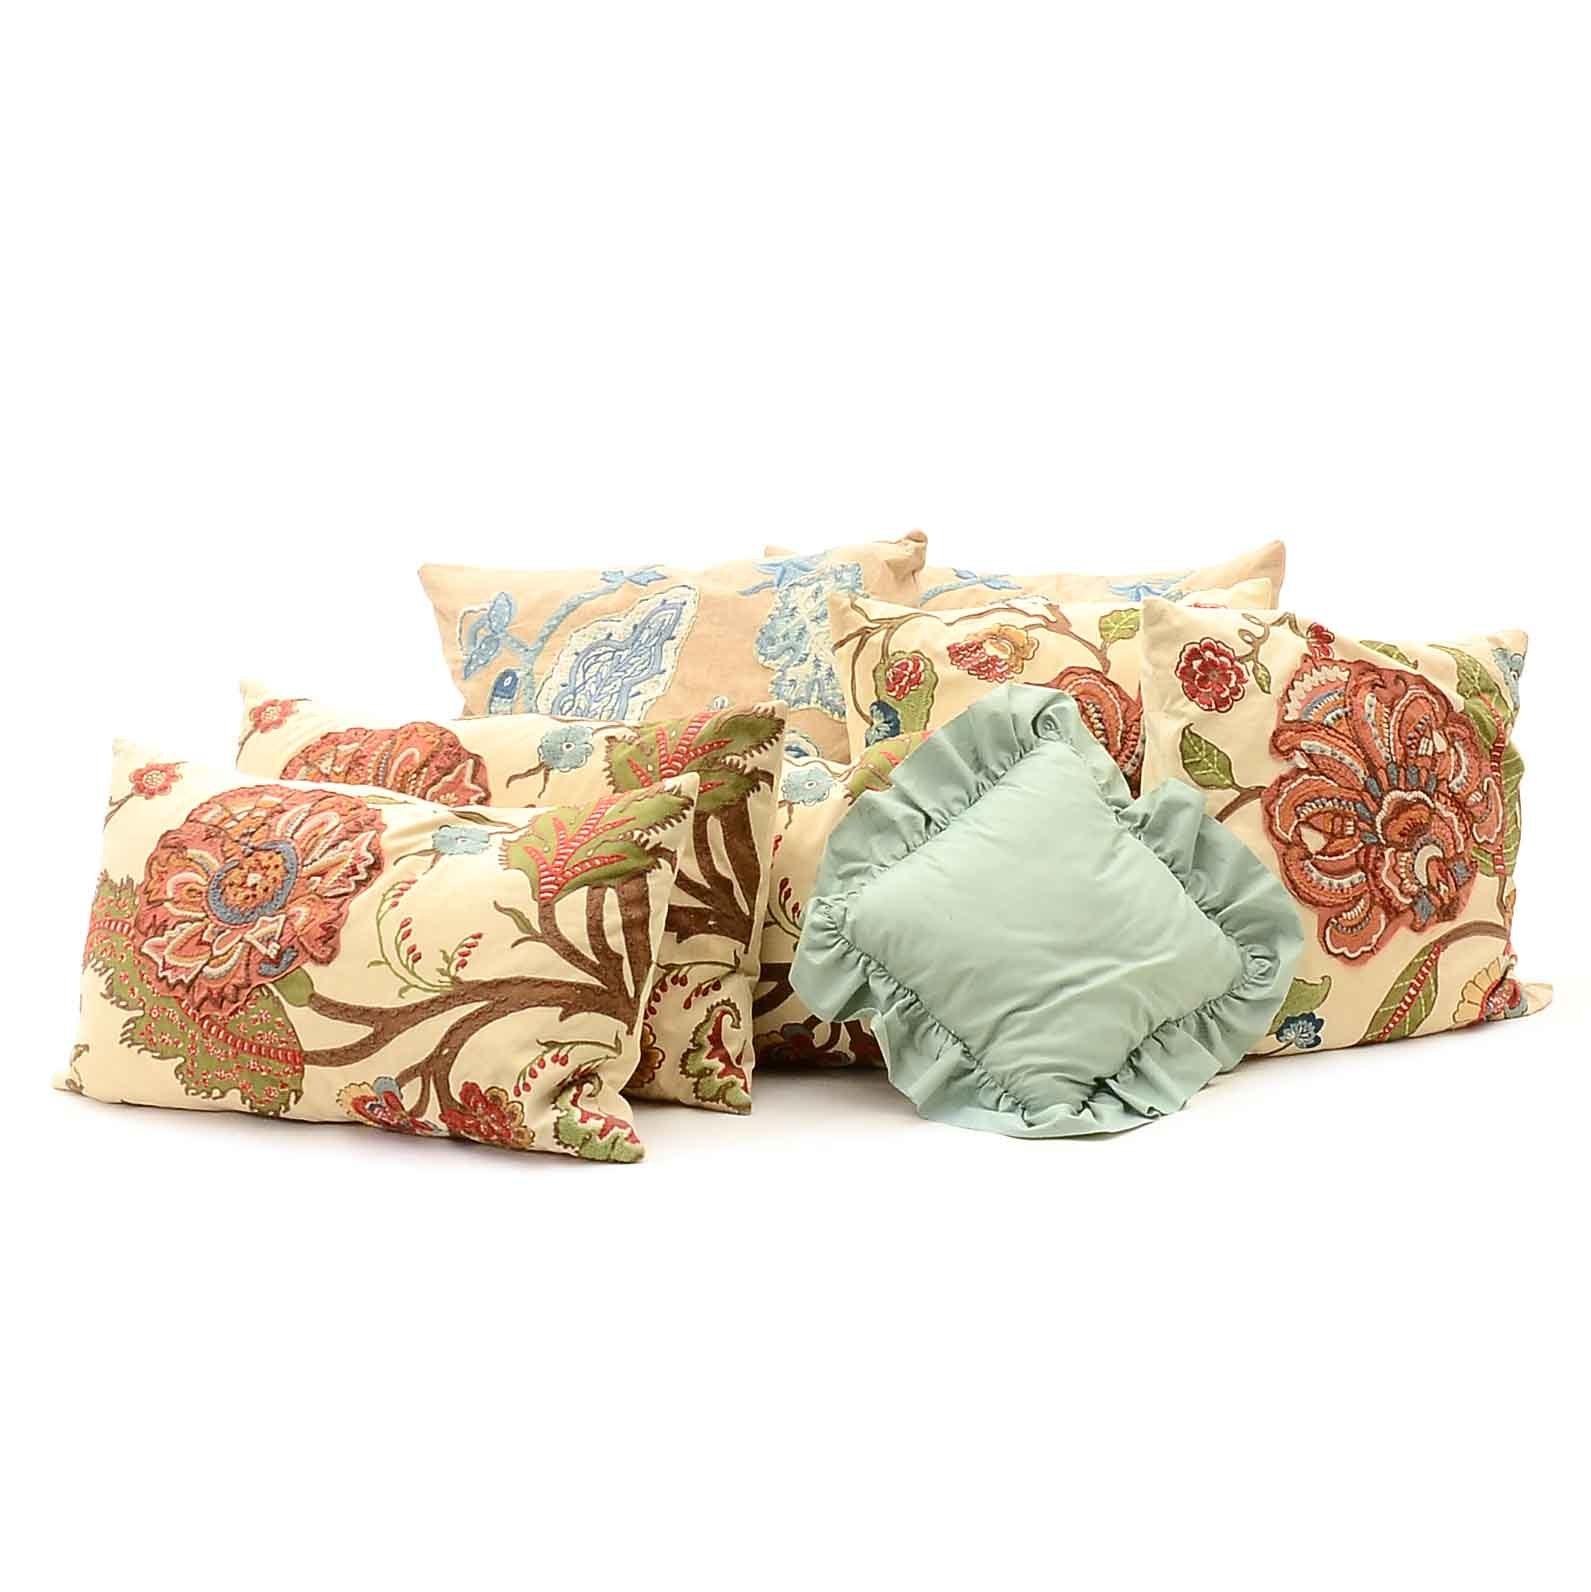 Group of Throw Pillows